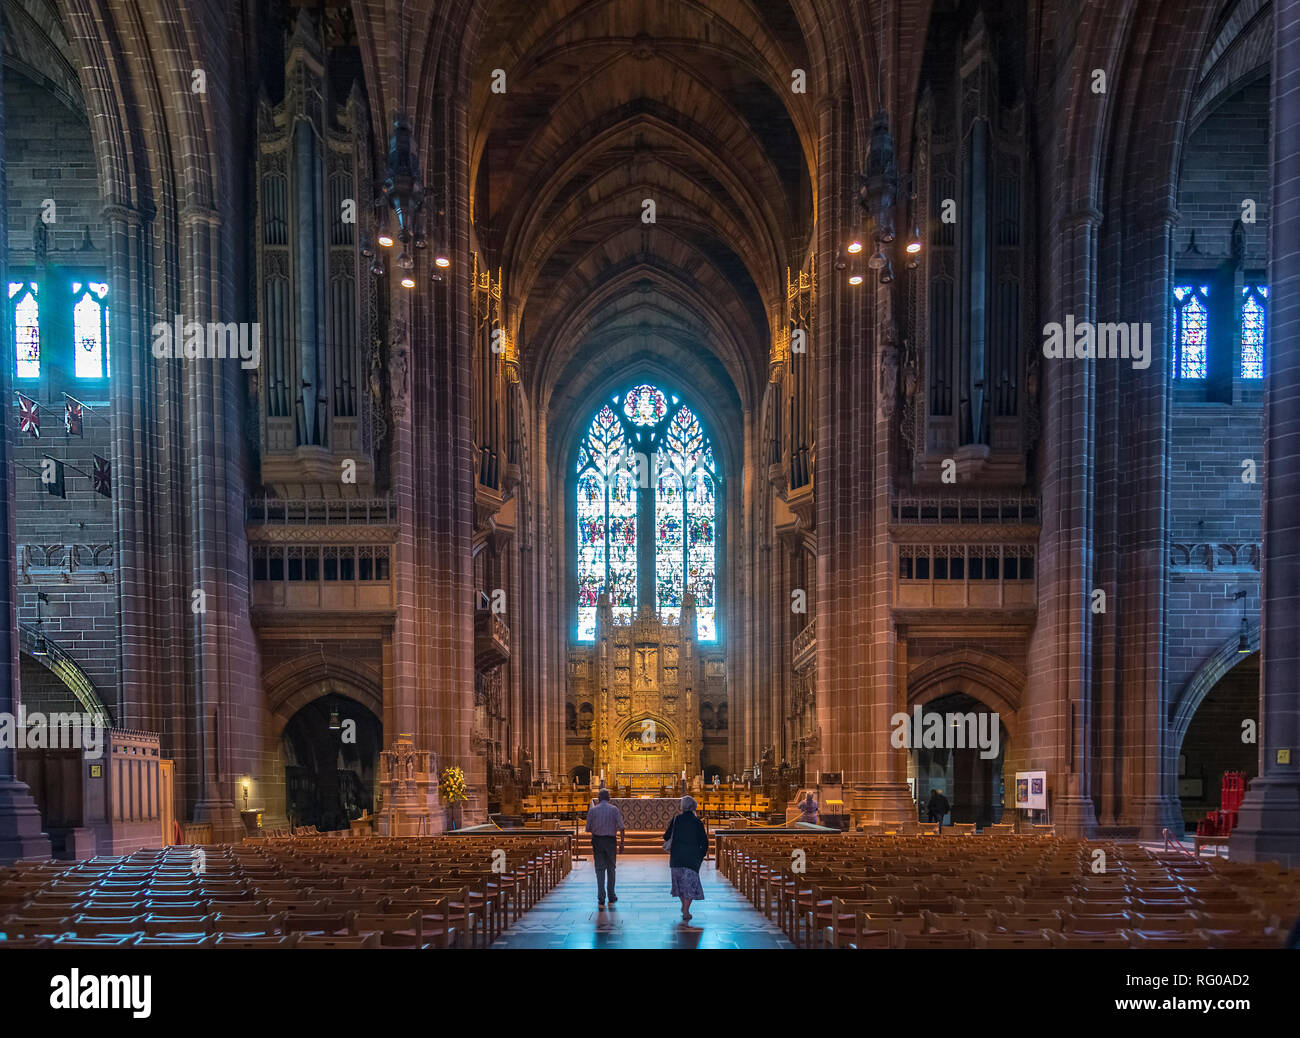 The interior of the Anglican cathedral Liverpool. Merseyside North West England. - Stock Image